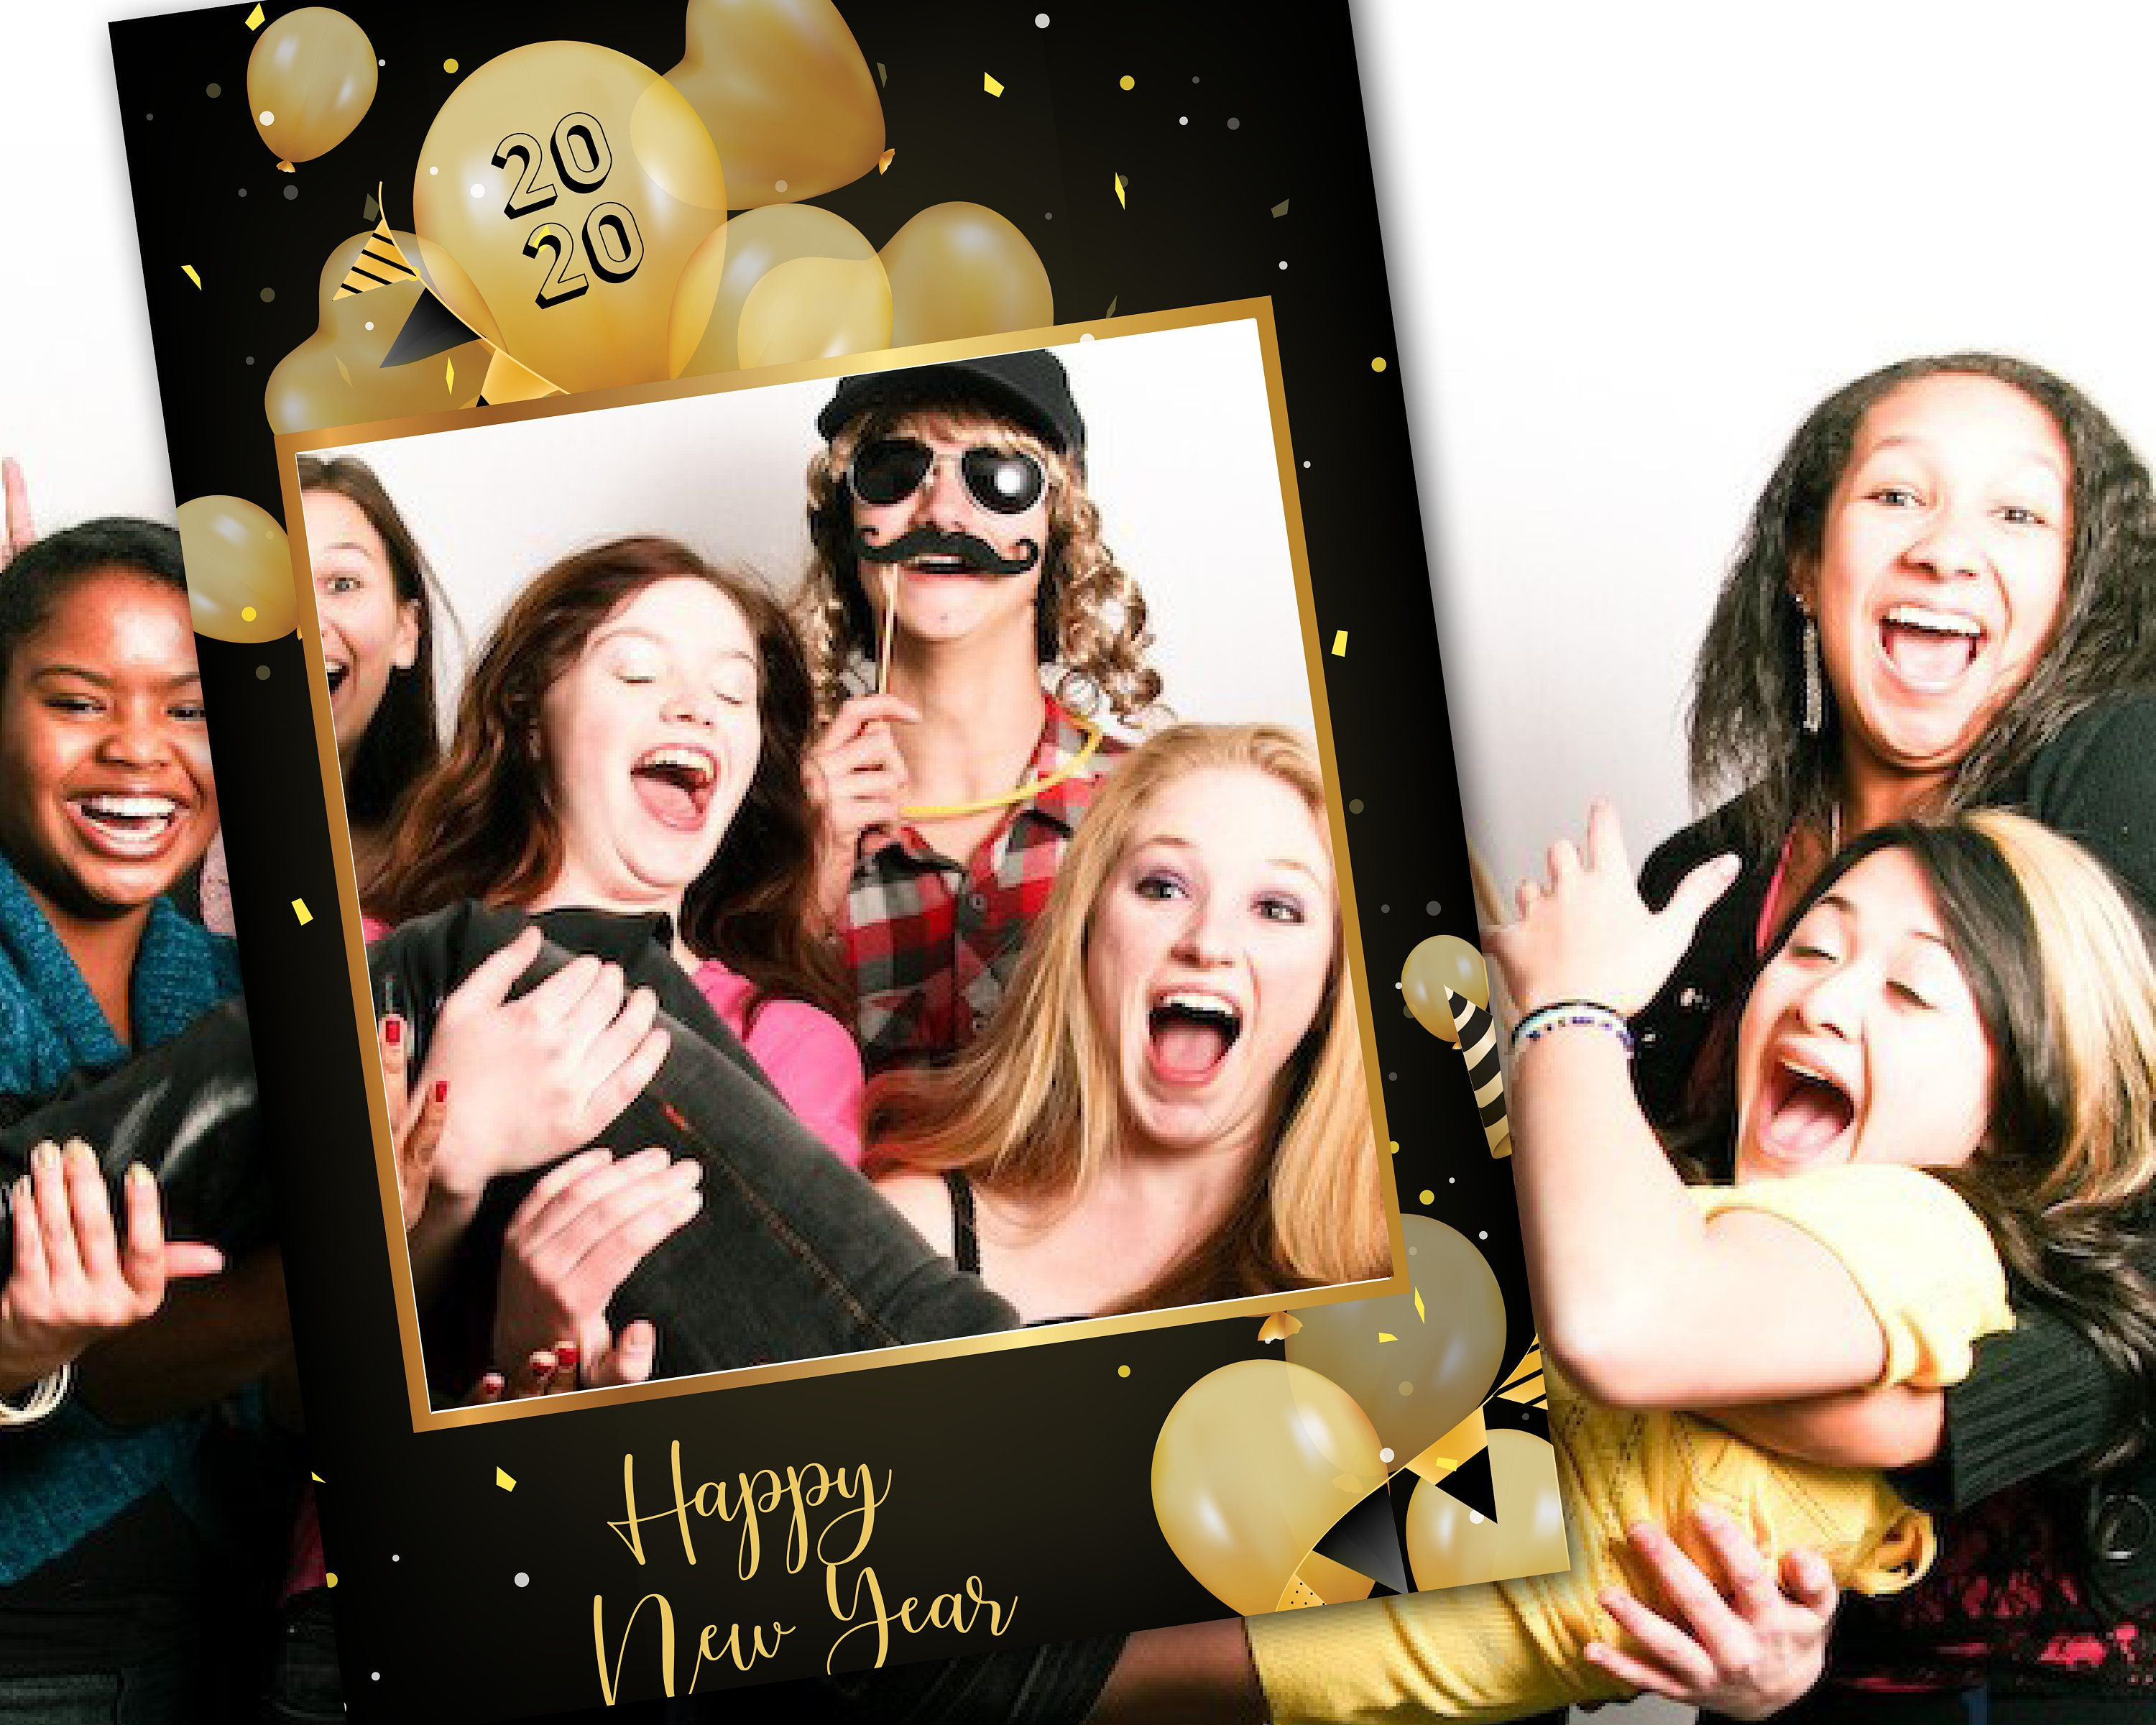 Photo Booth Selfie Frame New Year's Eve Party Fun 2020